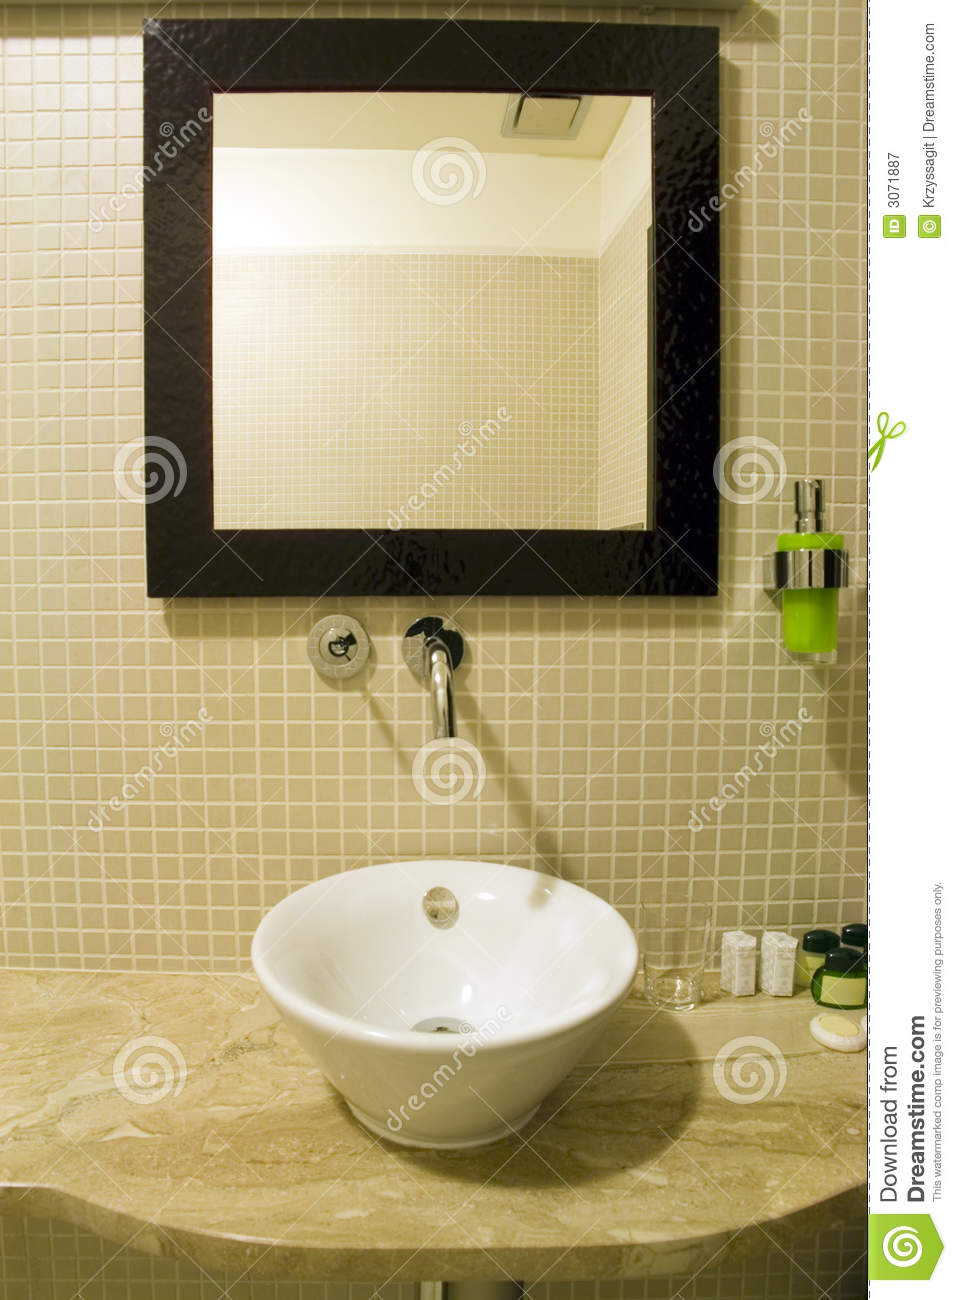 Bathroom sink and mirror - Bathroom Sink And Mirror